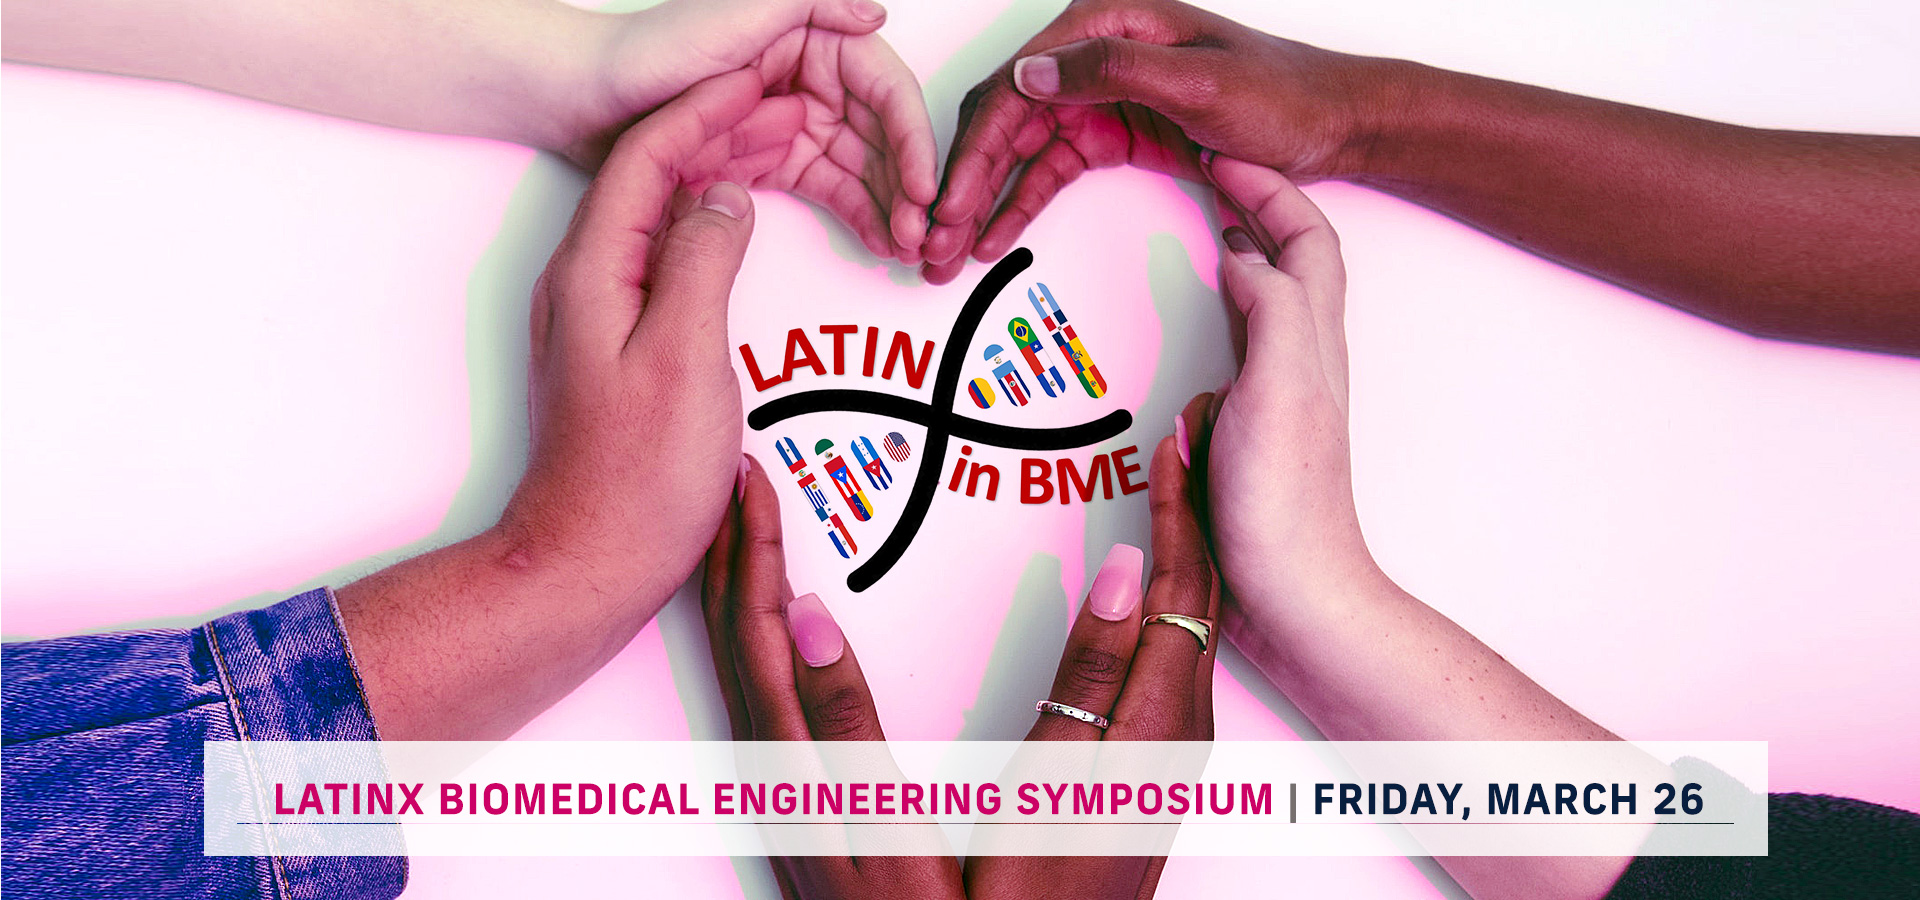 Inaugural LatinX BME Symposium a chance to spotlight growing science community